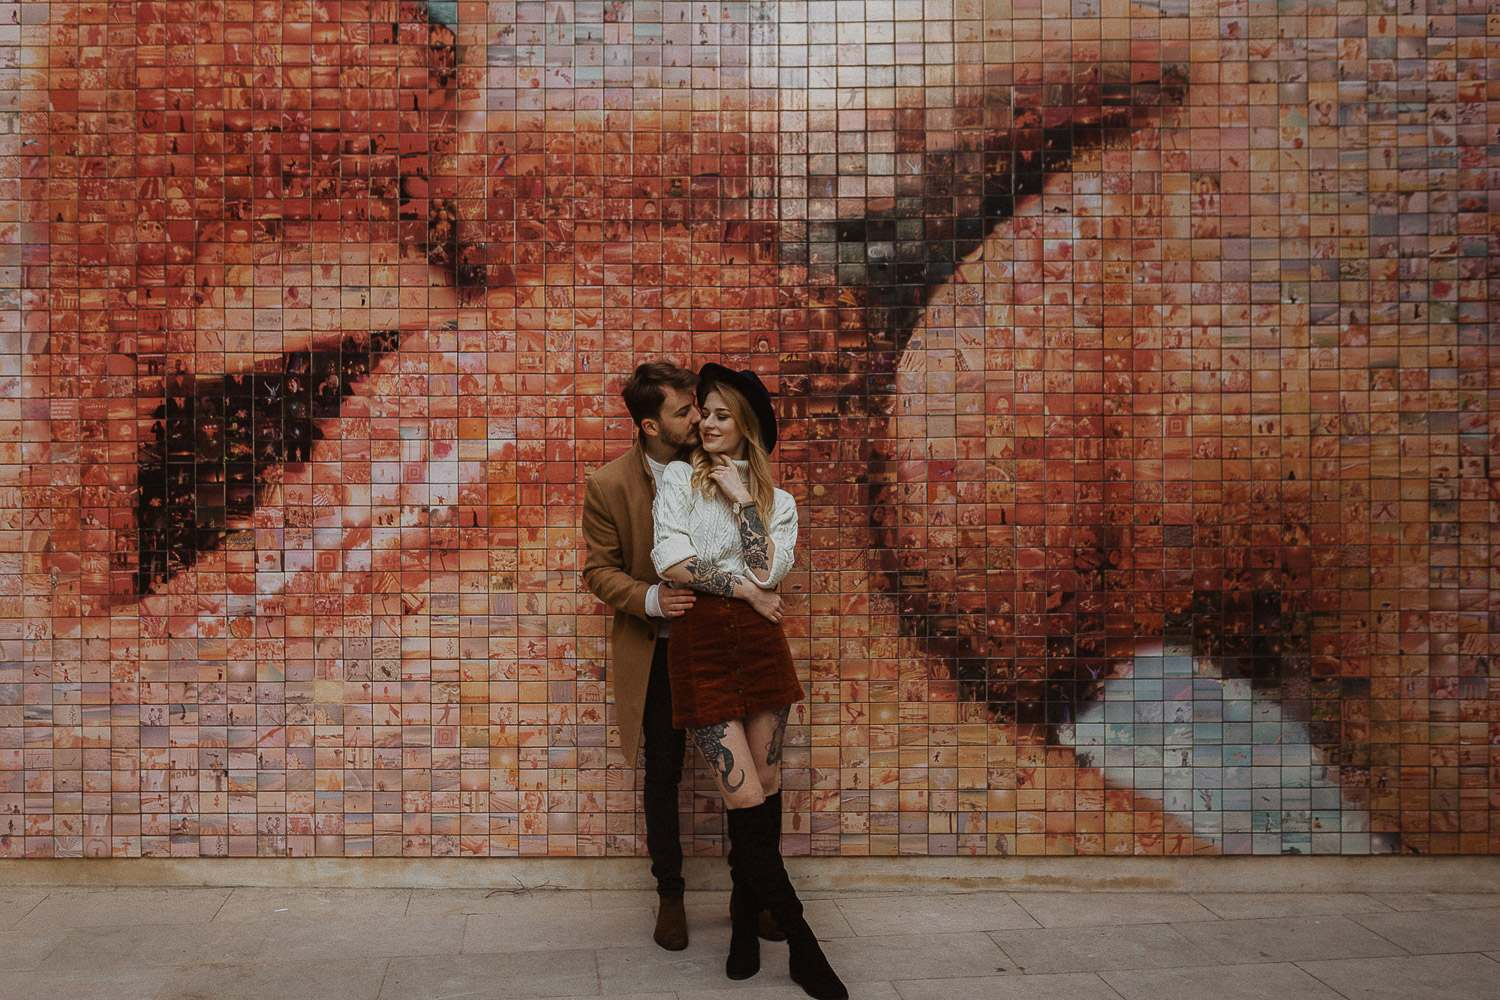 The mural of Barcelona: The World Begins With Every Kiss